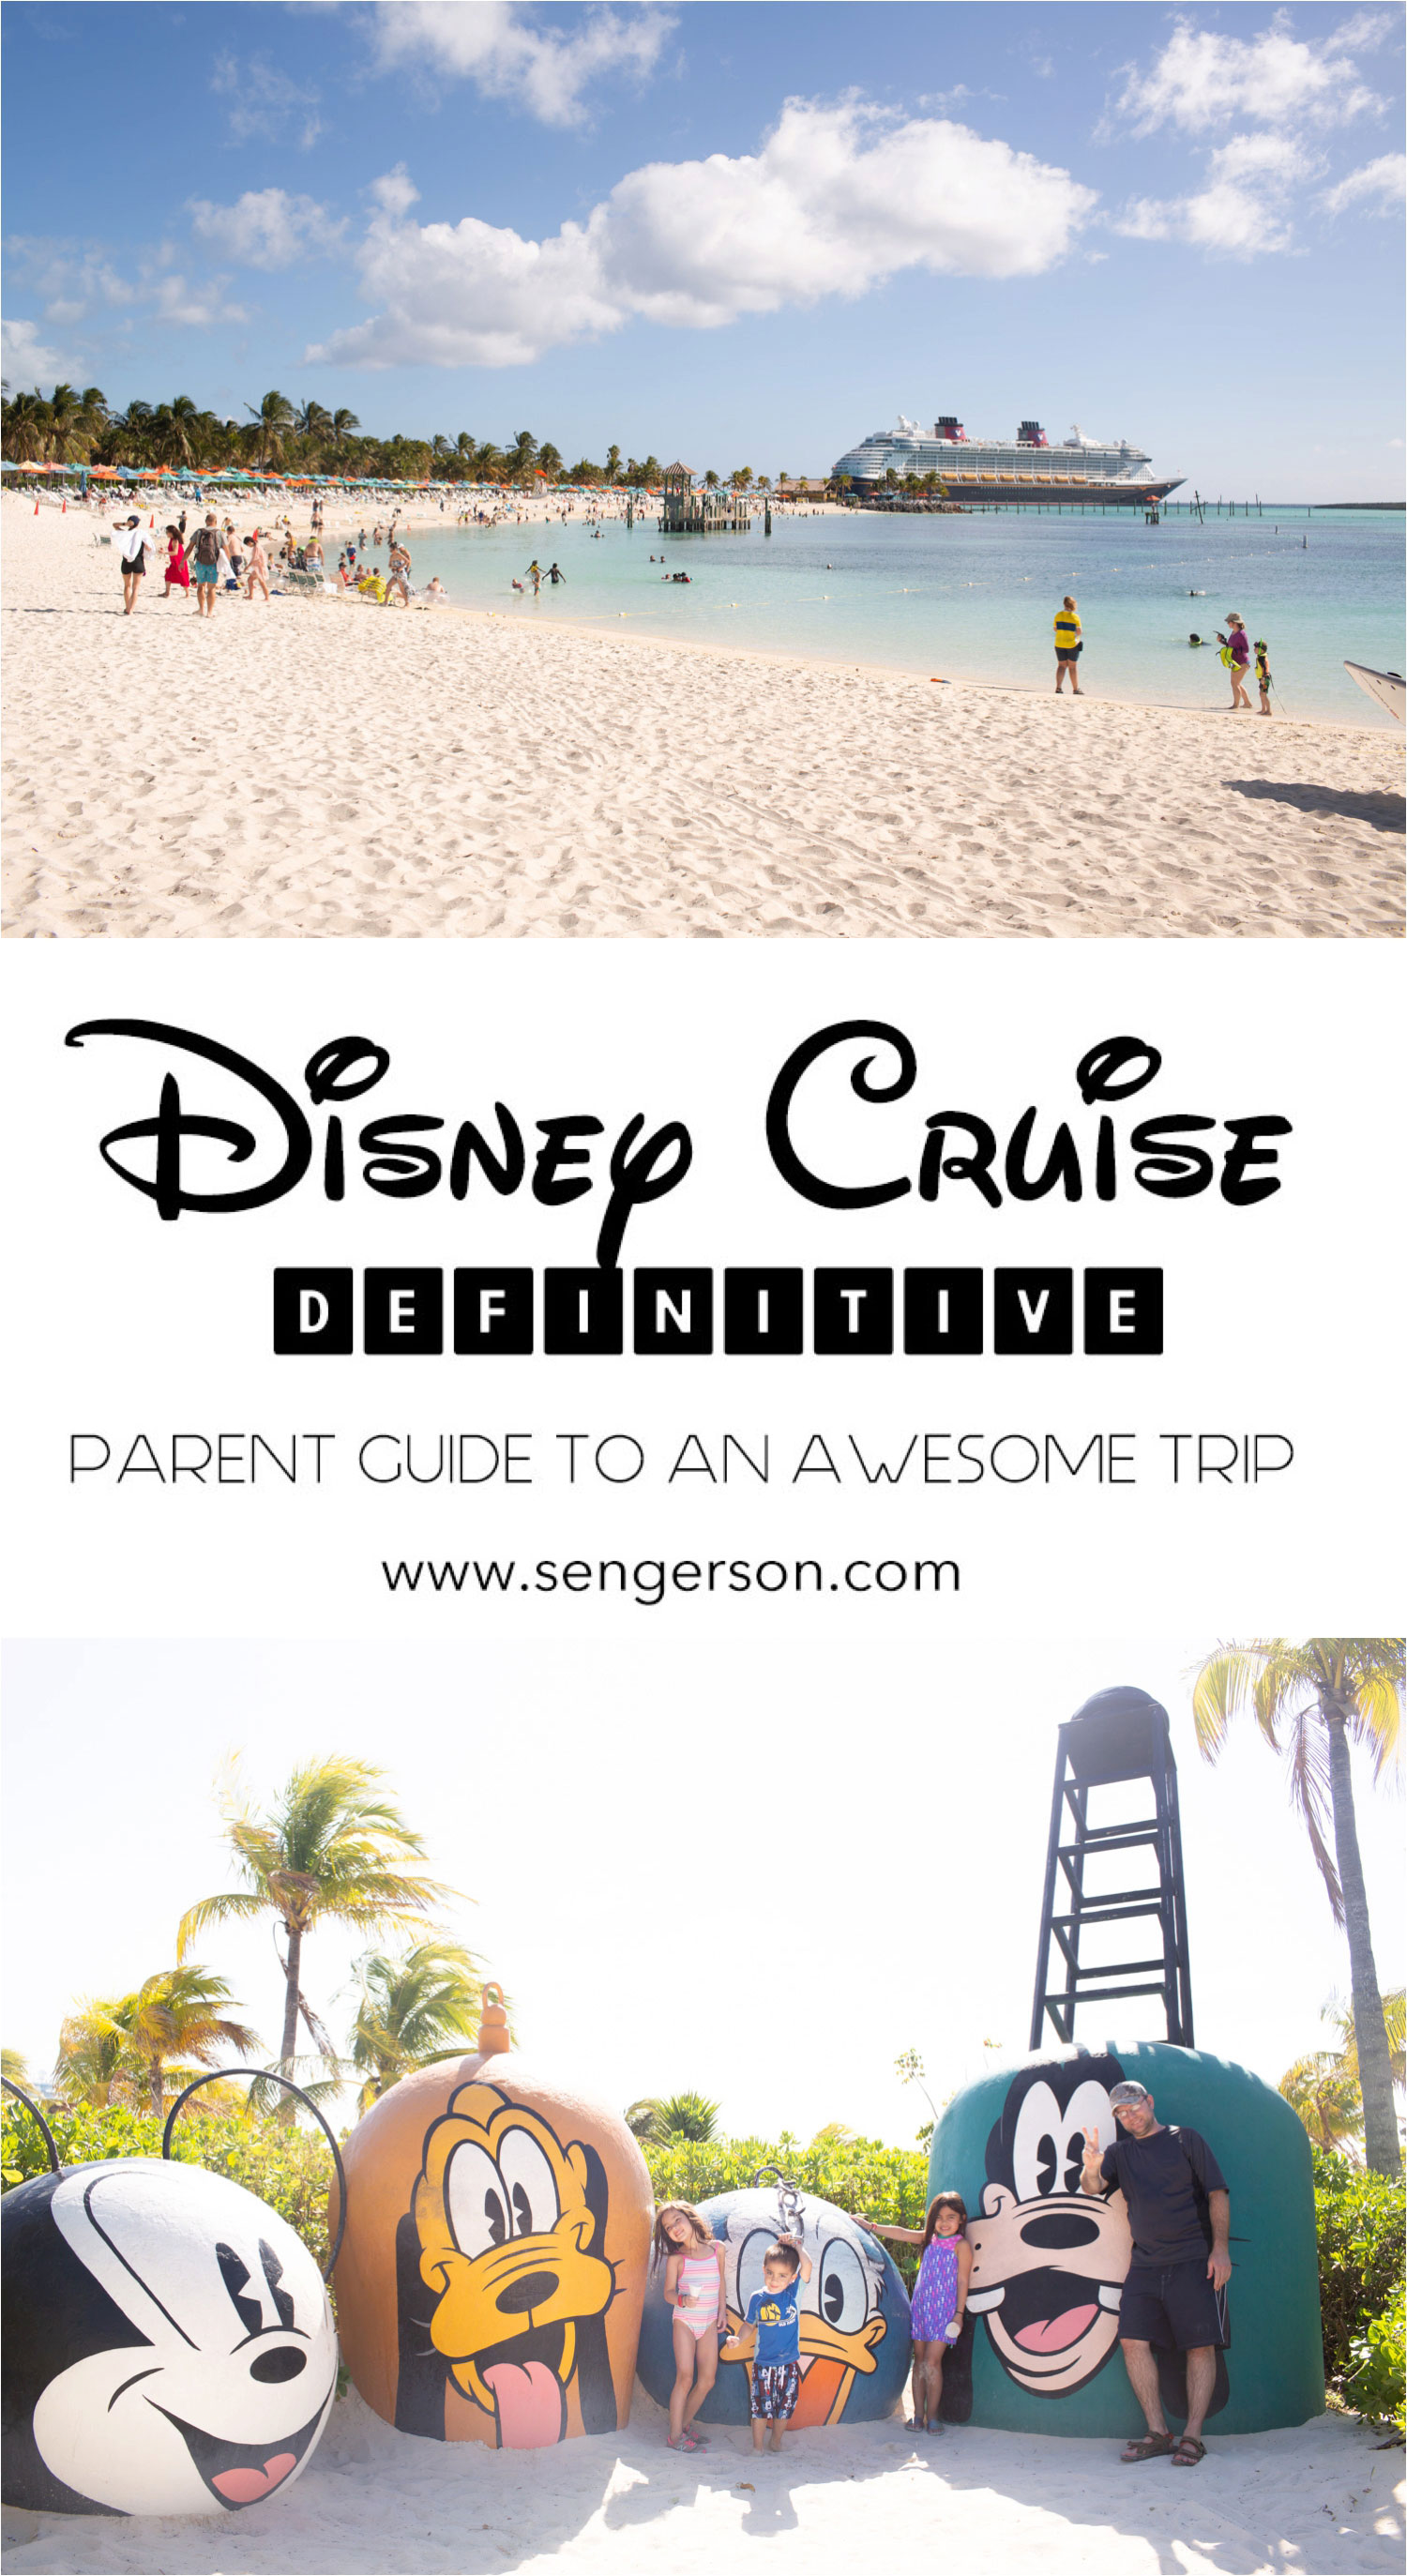 ULTIMATE Cruise Review on the Biggest Disney Cruise Ship